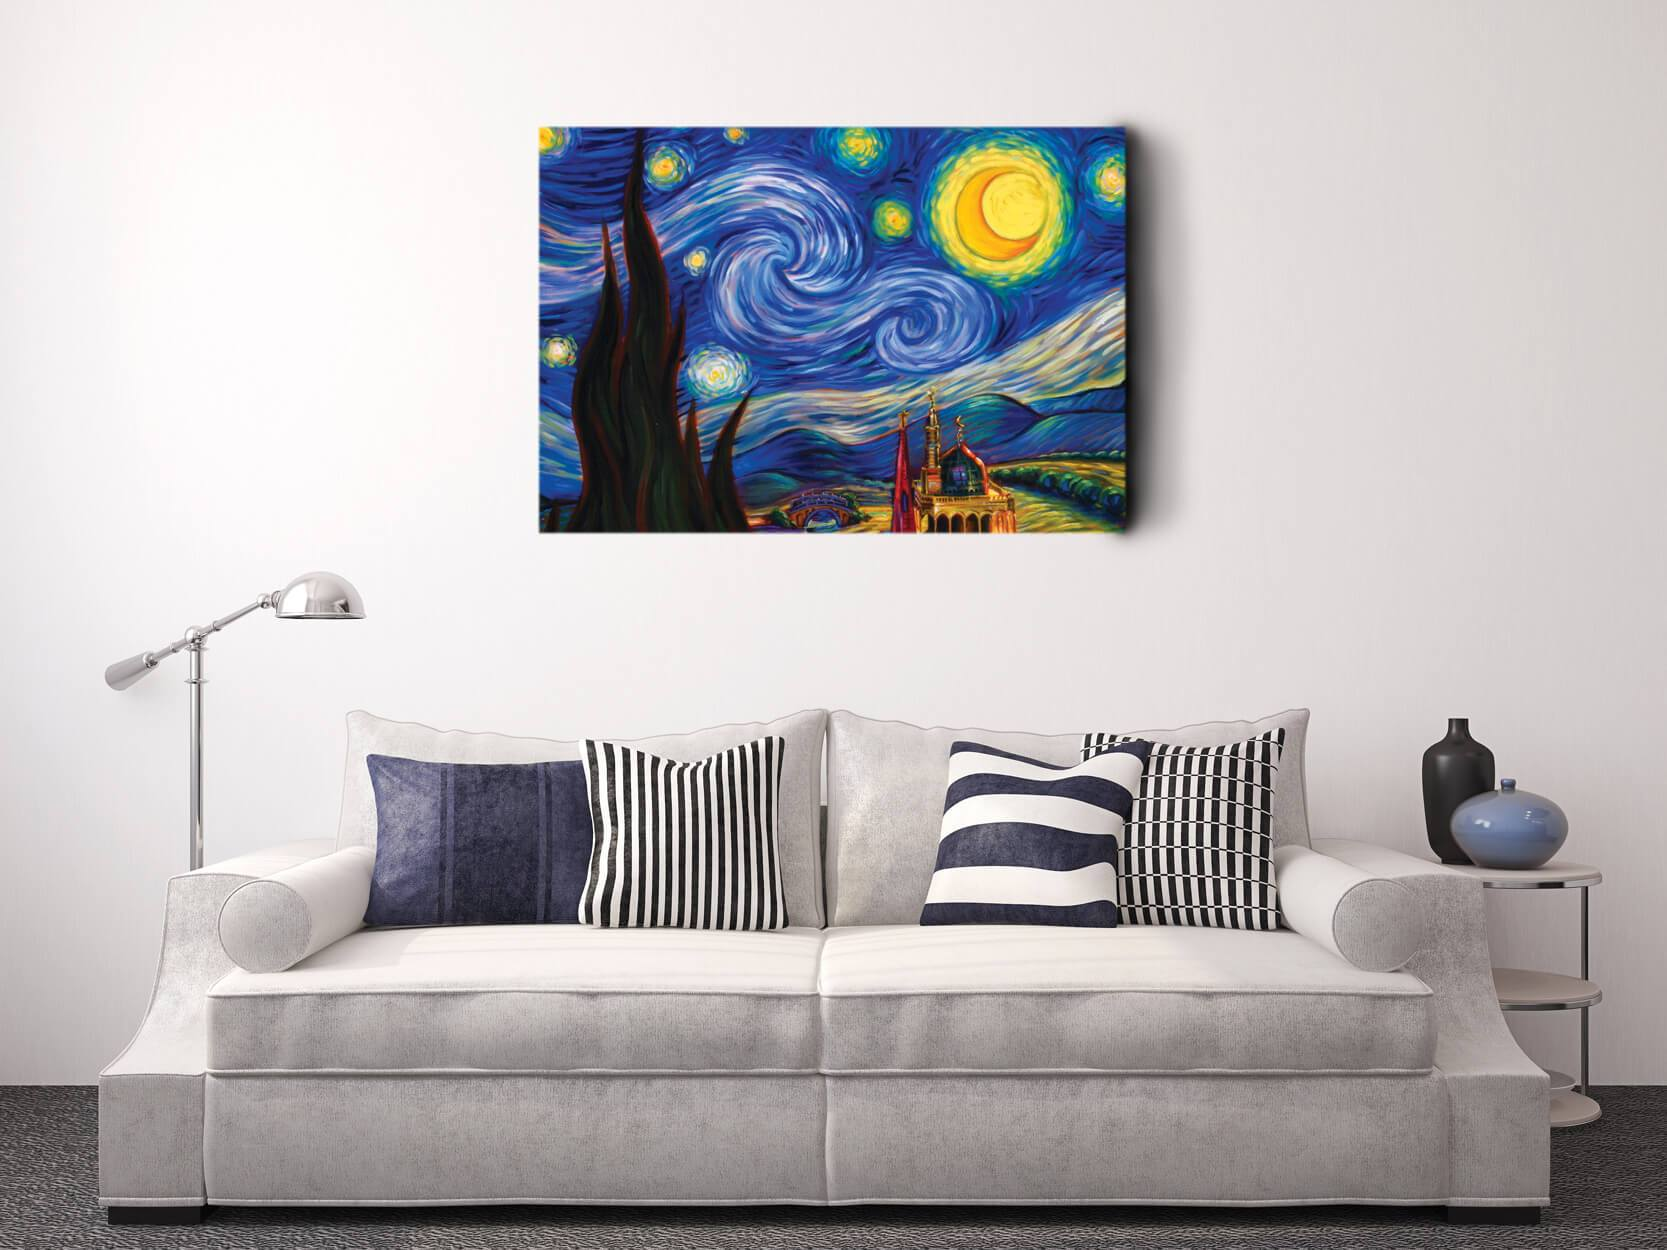 Van Gogh Starry Night - Canvas Wall Art Canvas Wall Hanging Decoration for  Homes and Offices - Walmart.com - Walmart.com